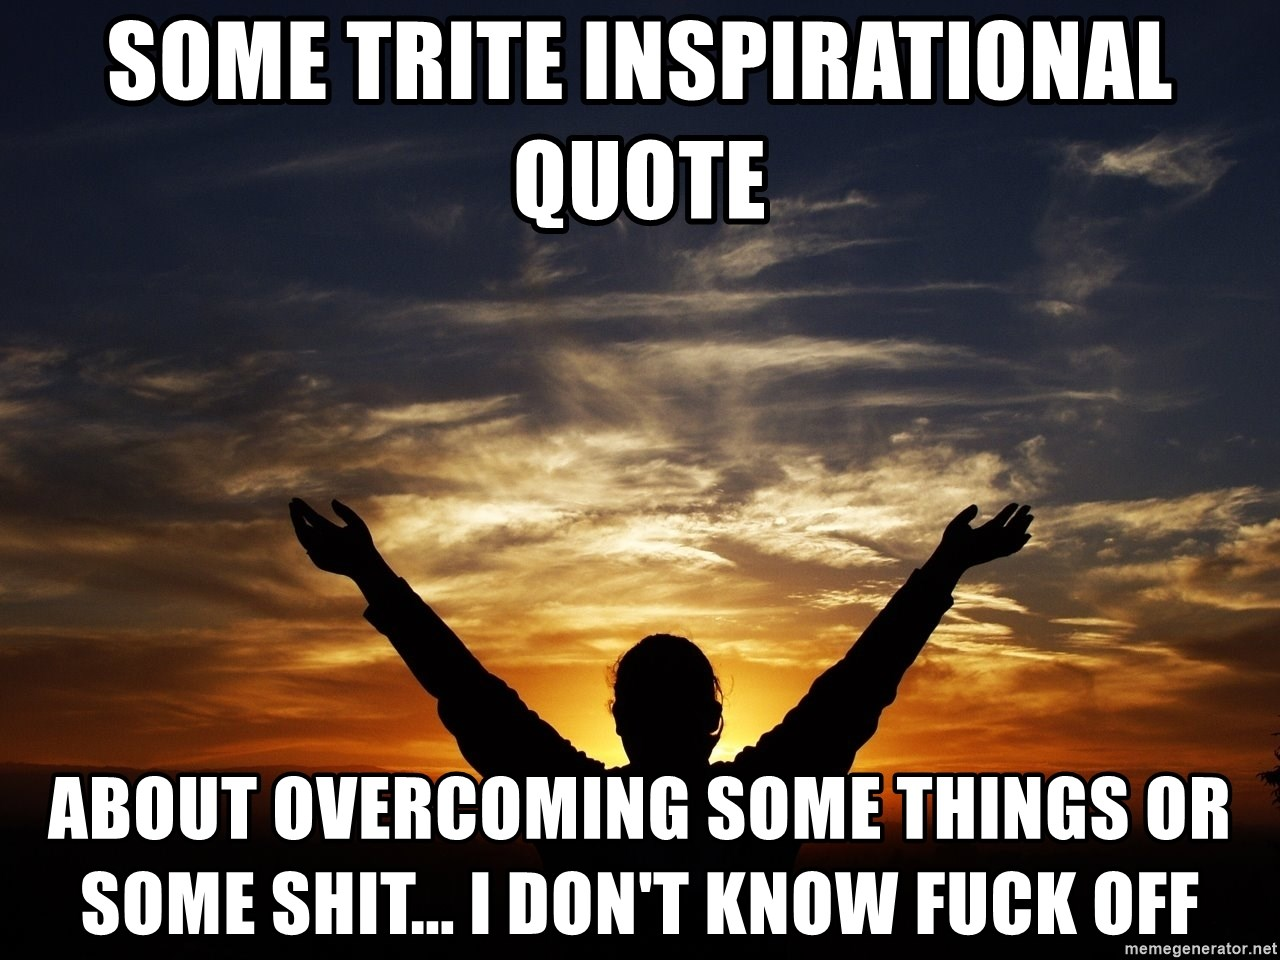 Inspirational Quote Generator Awesome Some Trite Inspirational Quote About Overcoming Some Things Or